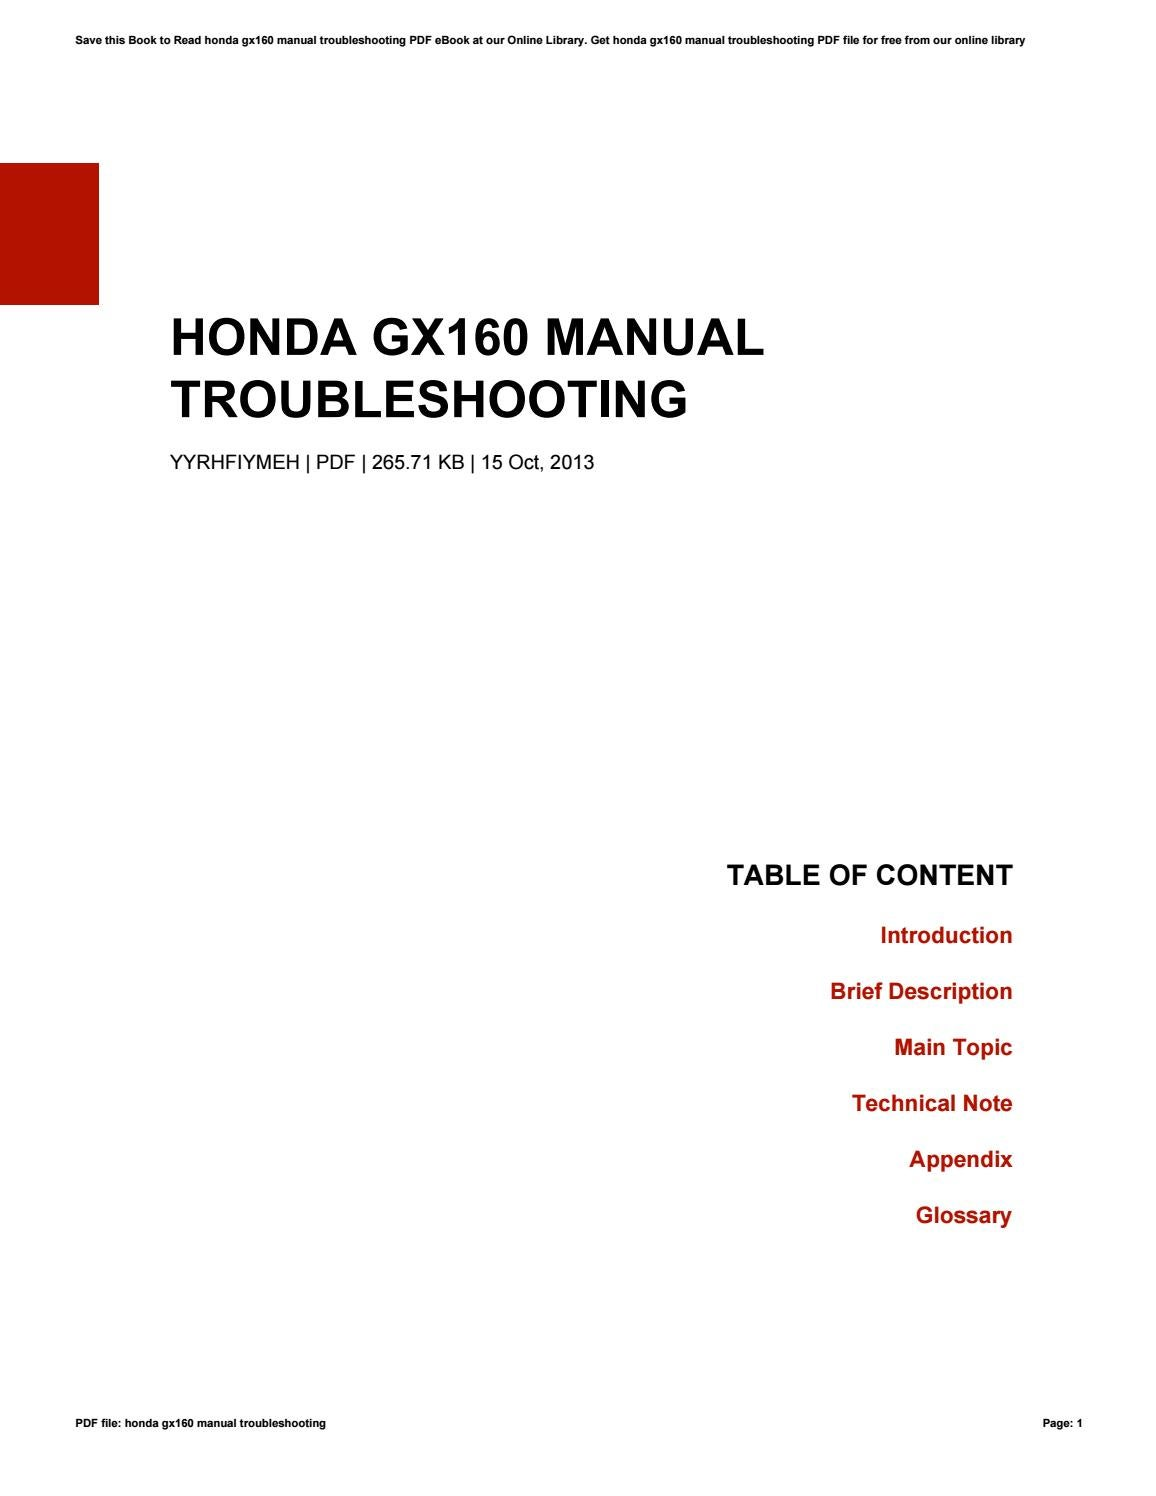 Honda gx160 manual troubleshooting by KatieMacdonald2599